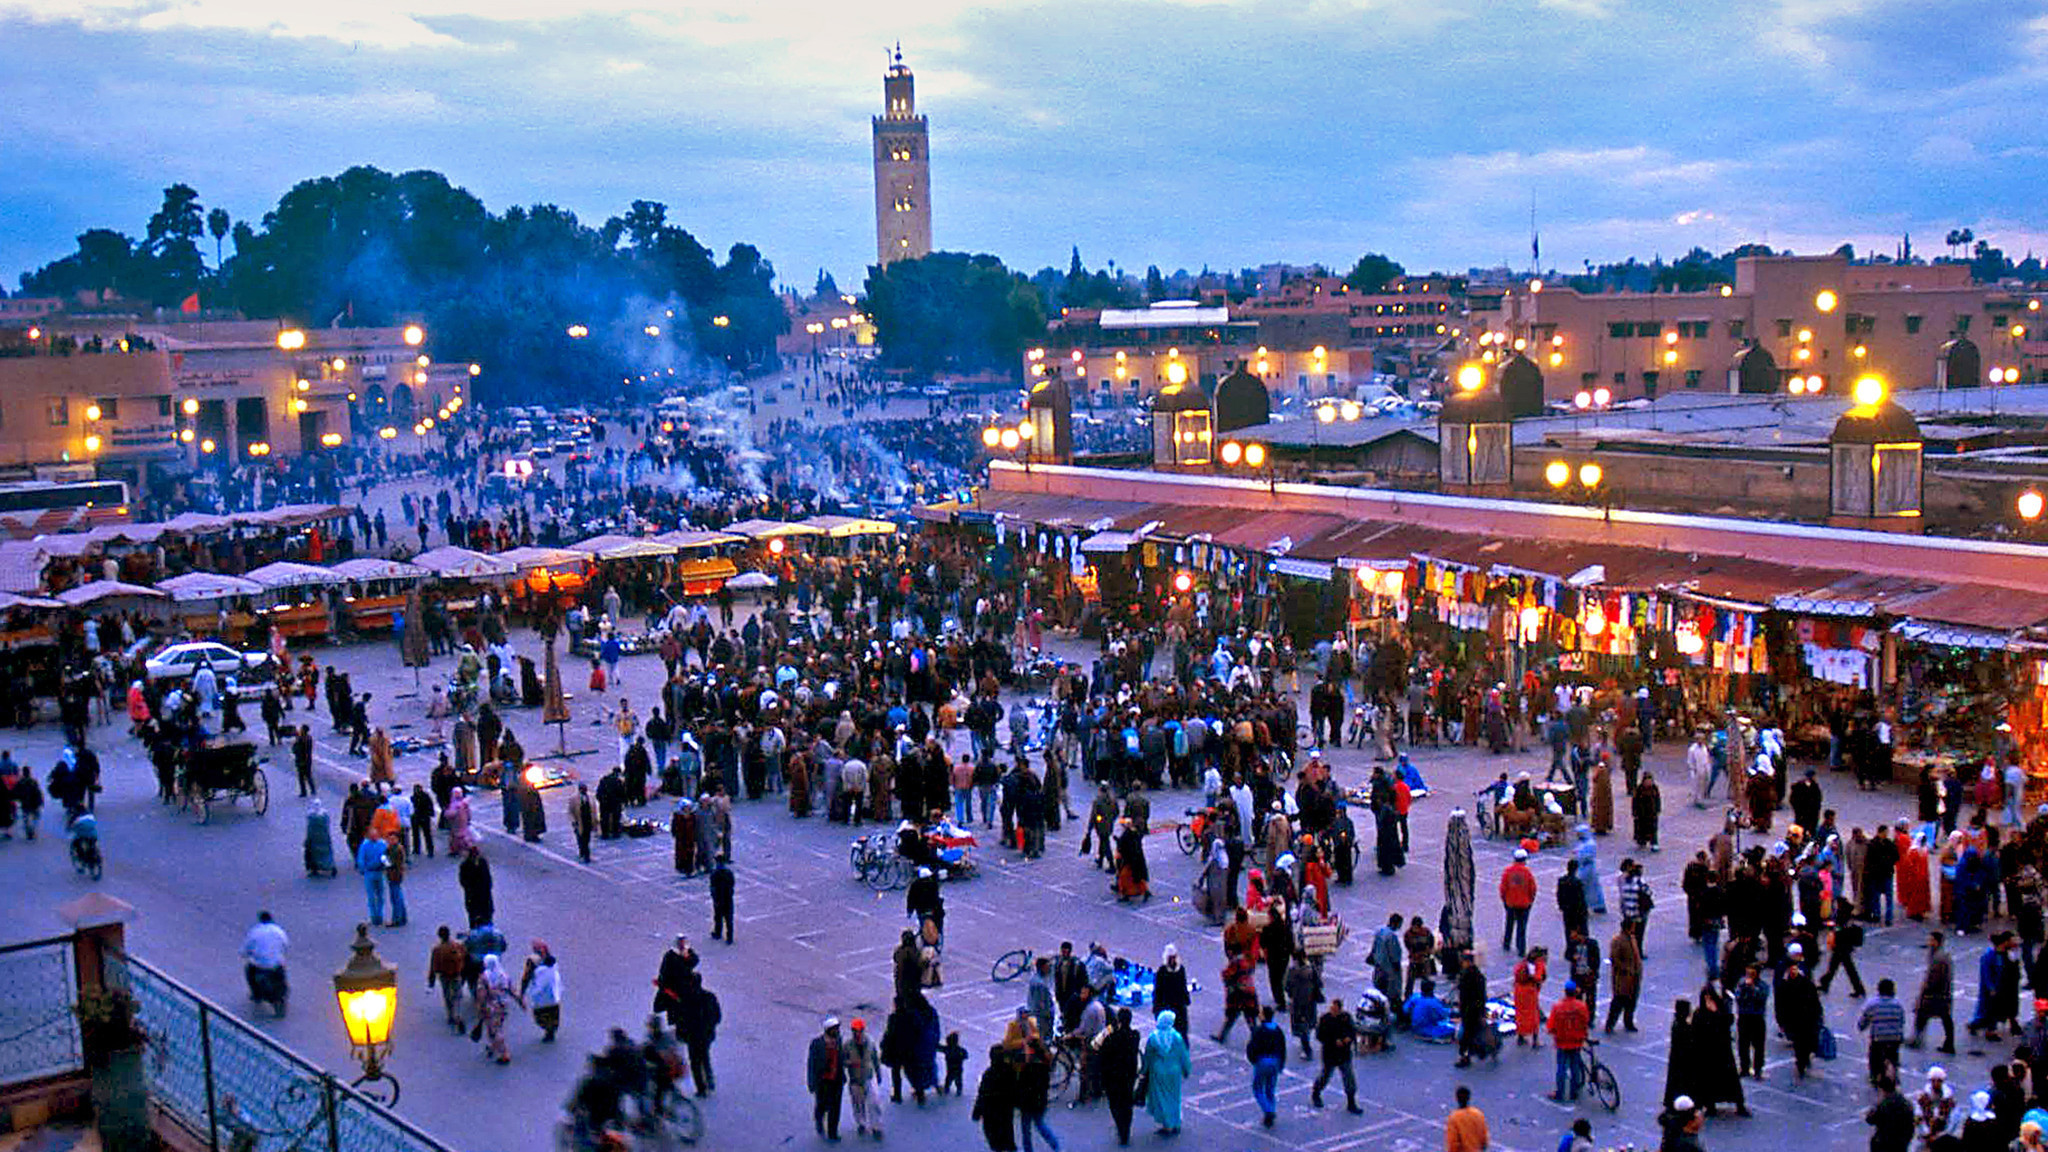 Res: 2048x1152, Airfare: Iberia offers $771 round-trip fare to Morocco from LAX .